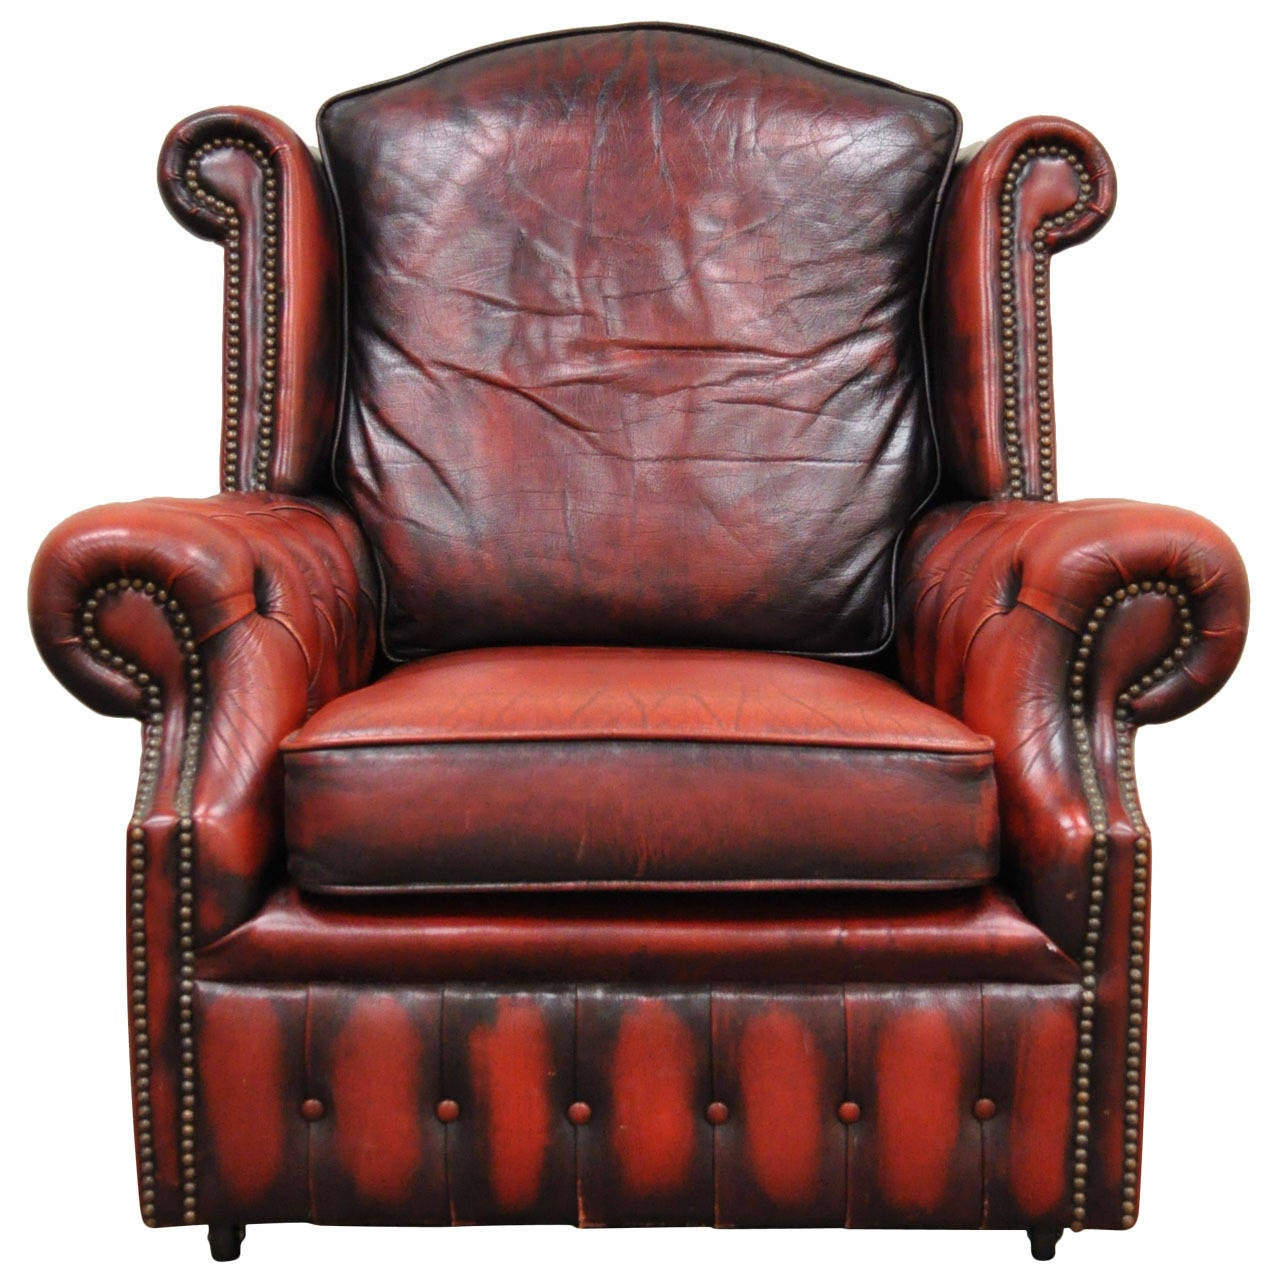 Striking Rolled Arm Tufted Chesterfield Style Lounge Chair in Red Leather For Sale